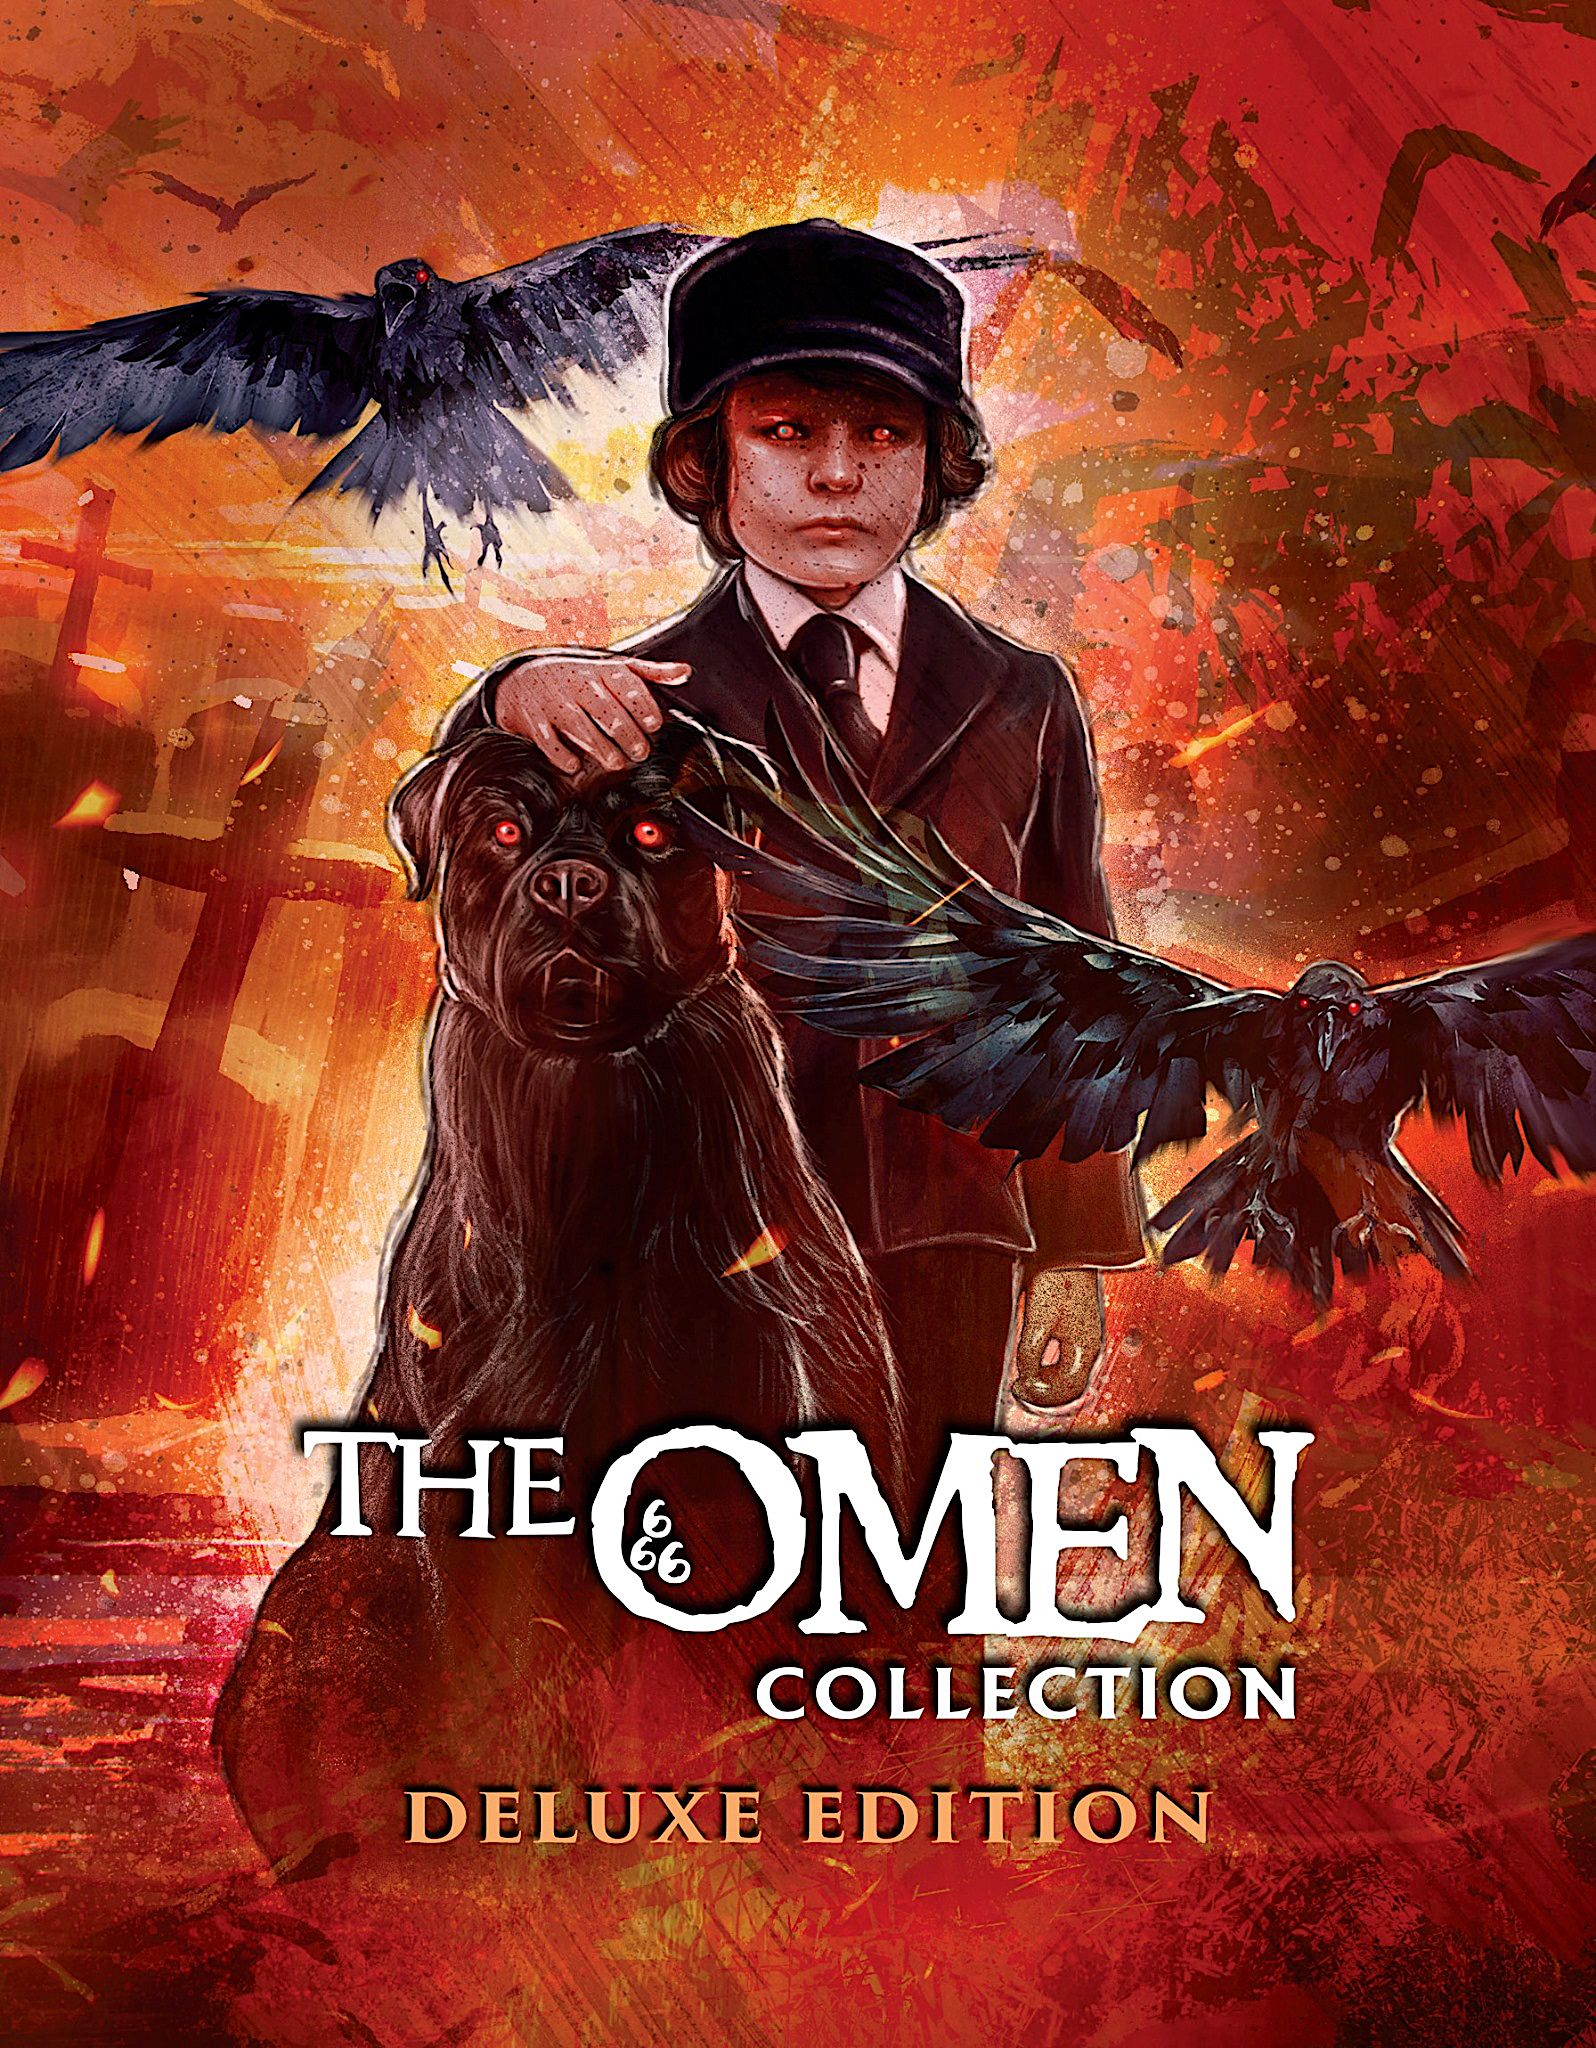 THE OMEN COLLECTION DELUXE EDITION BLURAY BOX SET (SCREAM